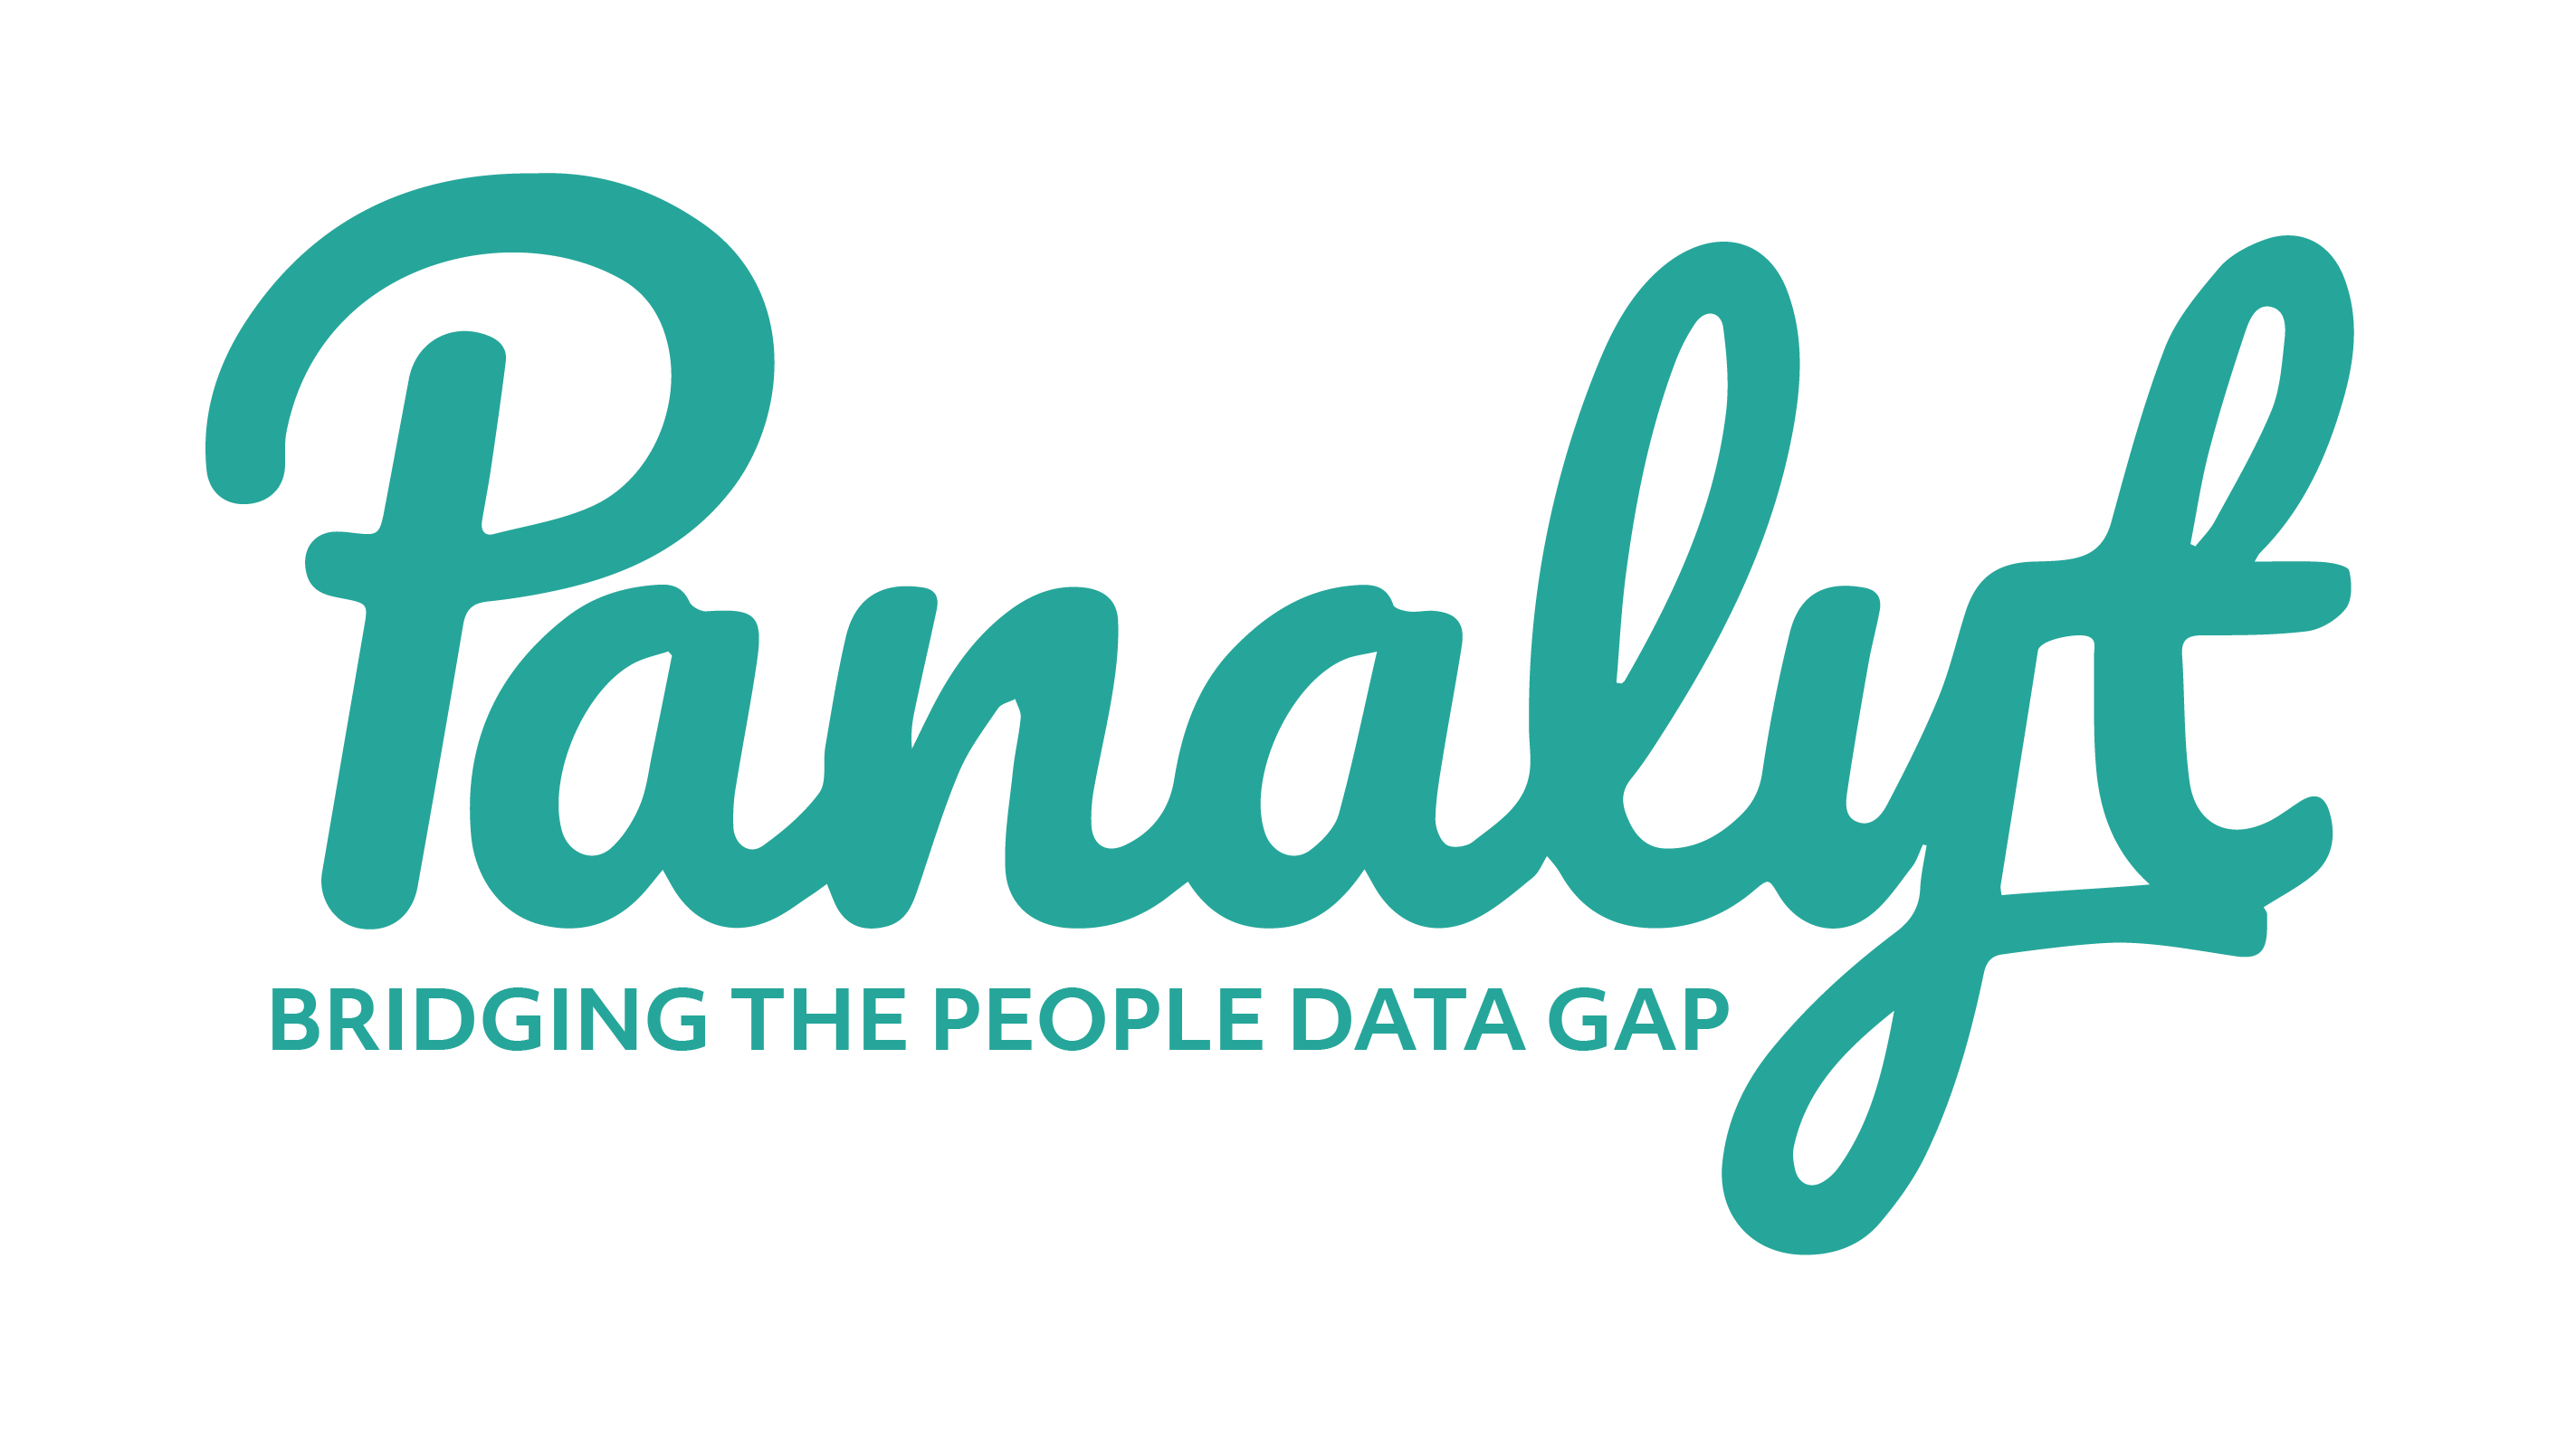 Panalyt raises US$3 Million To Enable Data-Driven Employee Decisions in the Workplace